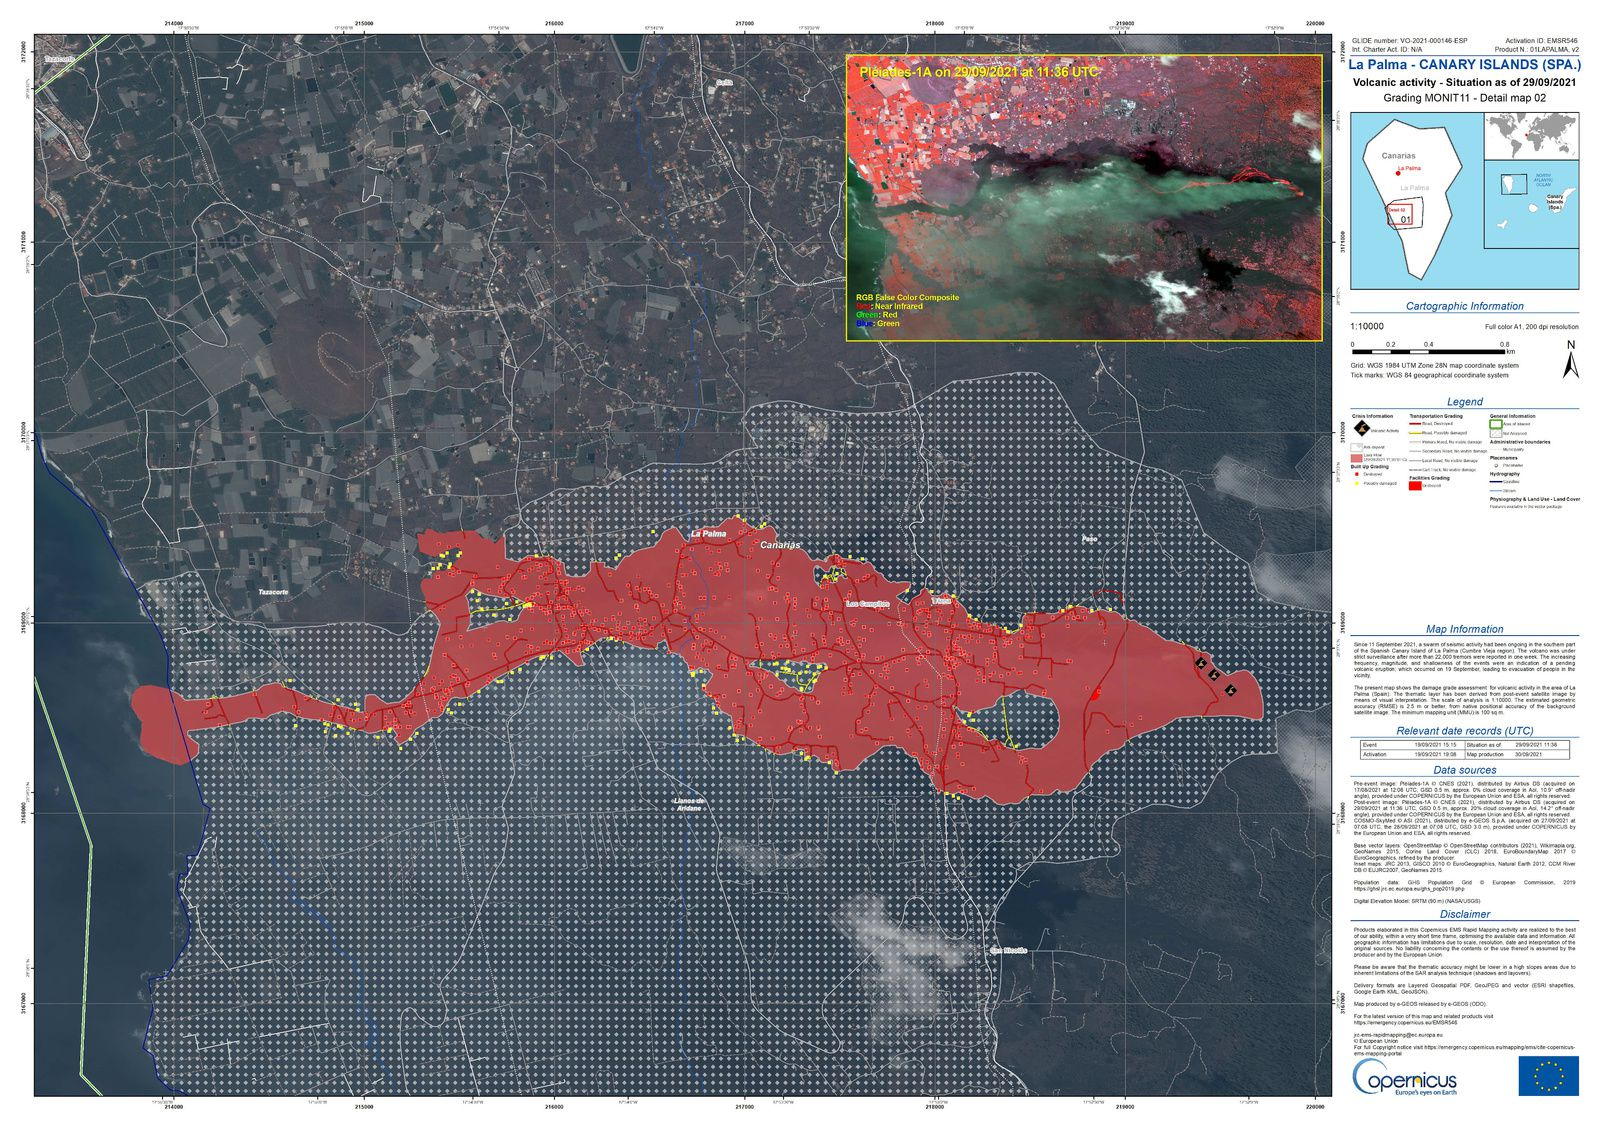 Les Canaries - Canary - La Palma - Volcan - Cumbre Vieja - Lave - EMS - emergency mapping - Copernicus - Volcano